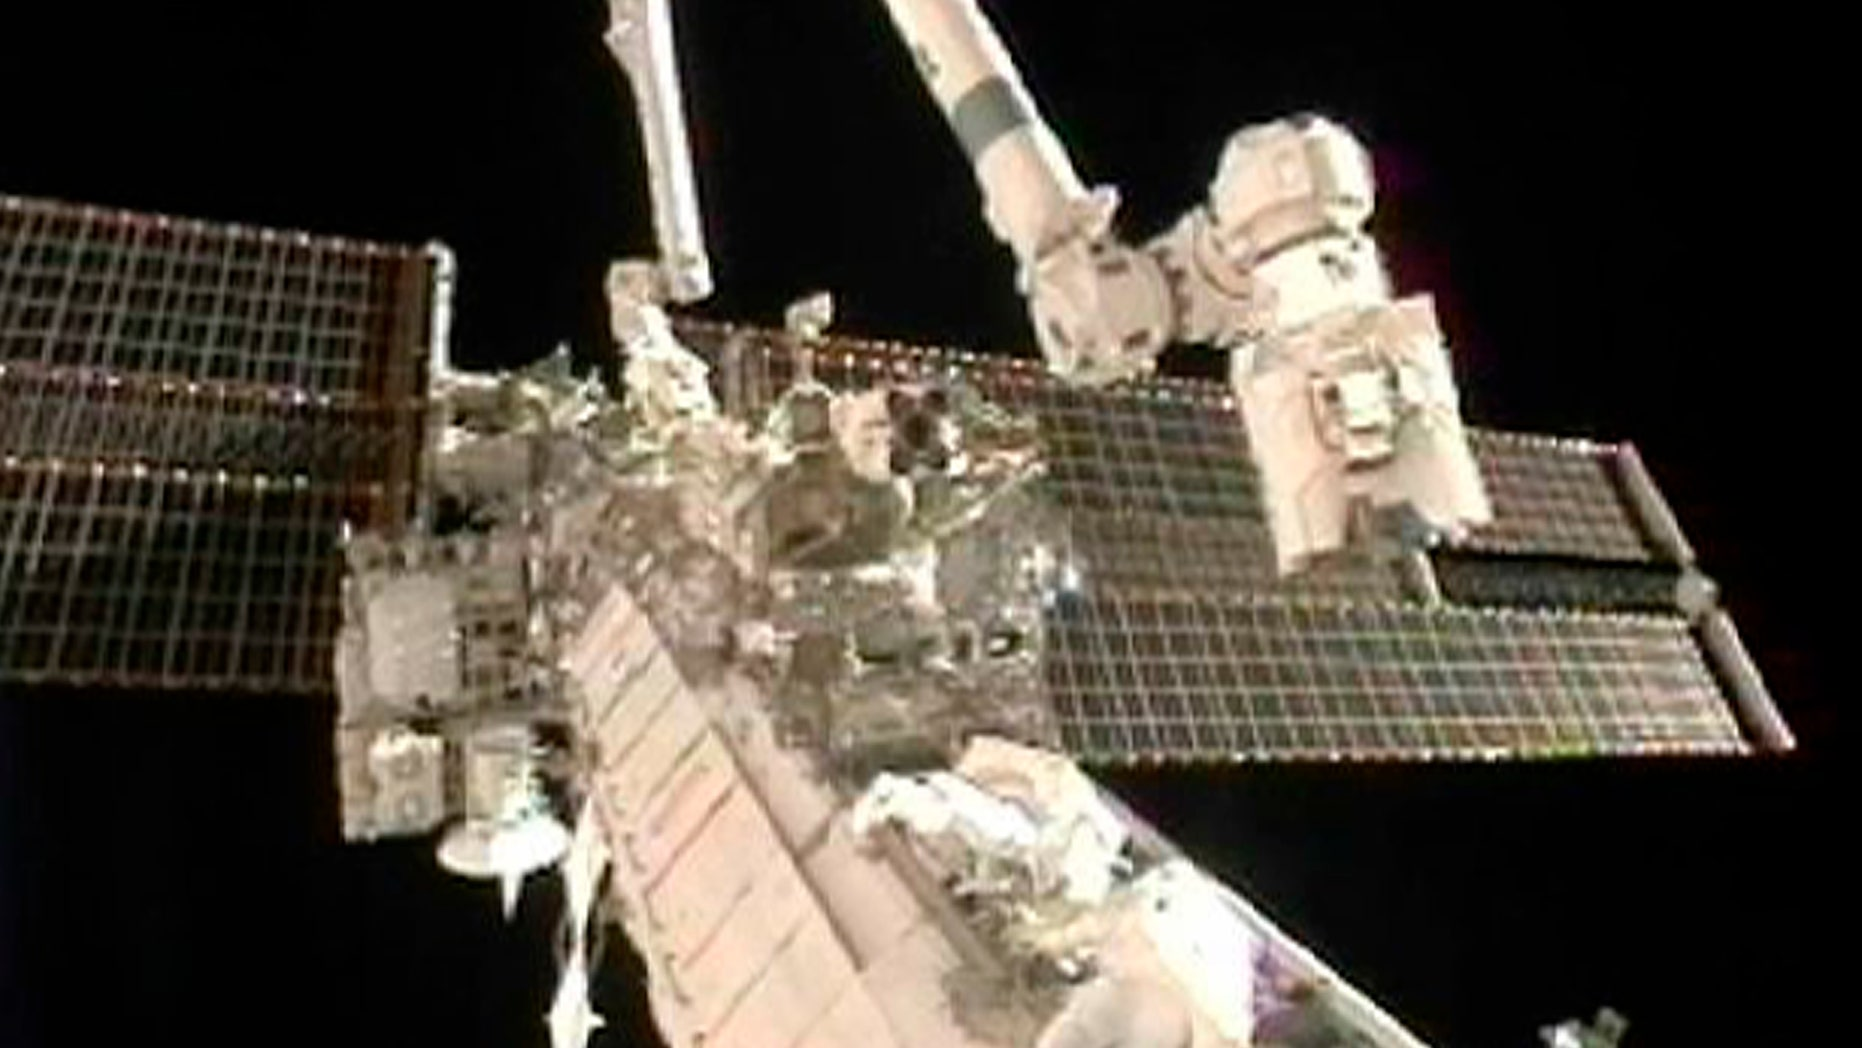 Doug Wheelock (top) and Tracy Caldwell Dyson work to remove a faulty ammonia pump module on the exterior of the International Space Station during their spacewalk in this image from NASA TV August 7, 2010.     REUTERS/NASA TV  (UNITED STATES) EDITORIAL USE ONLY NOT FOR USE IN ADVERTISING OR MARKETING CAMPAIGNS (SCI TECH SOCIETY) FOR EDITORIAL USE ONLY. NOT FOR SALE FOR MARKETING OR ADVERTISING CAMPAIGNS